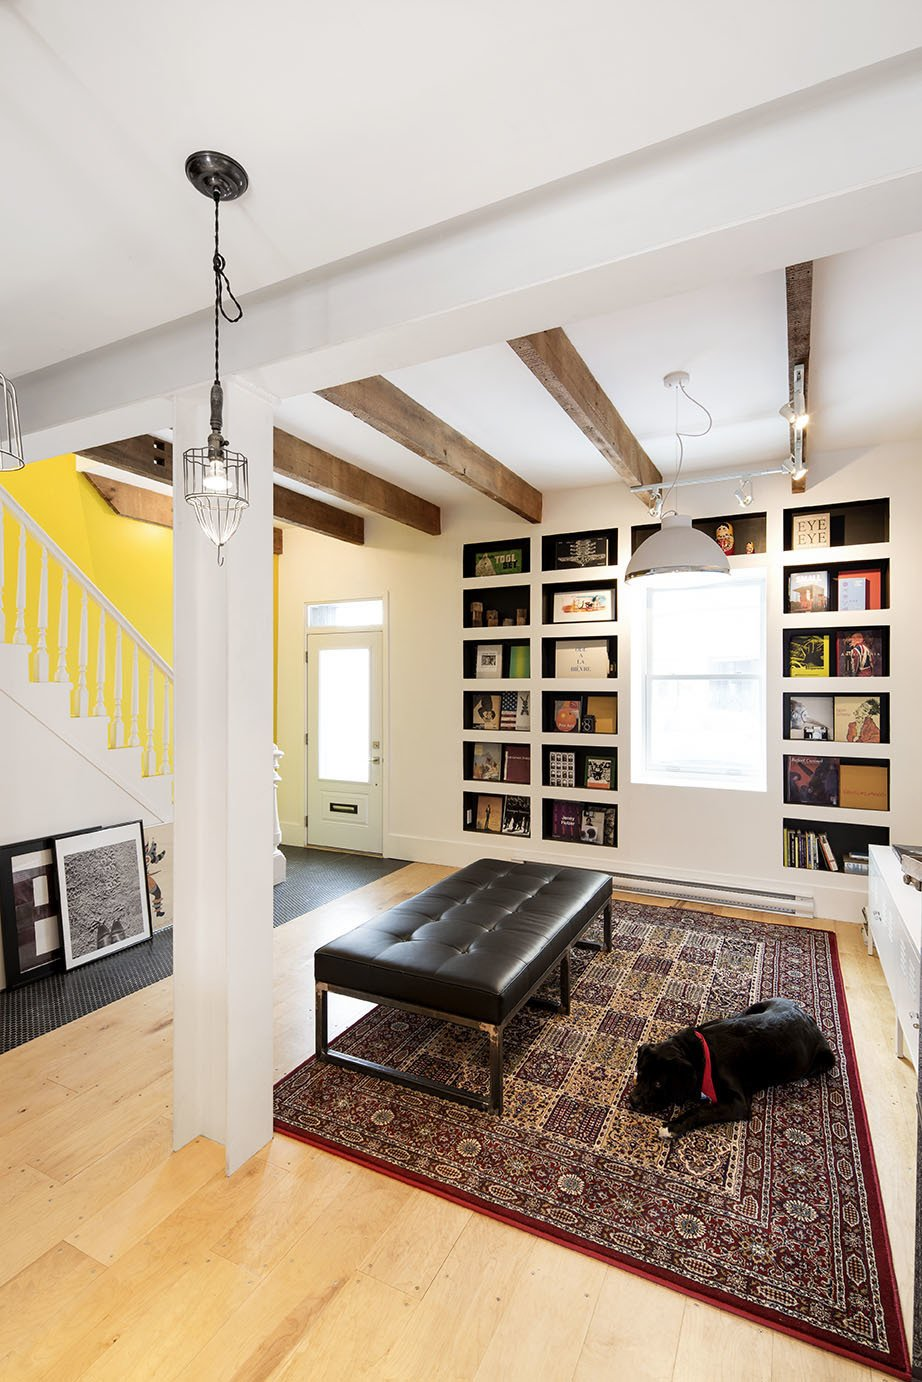 Living Room, Plywood Floor, Bench, and Bookcase Locally sourced Canadian plywood was used for the flooring throughout the home, and all doors and windows were replaced with low-energy upgrades. The couple shares their space with guide dogs they foster through a local organization.  An Old Row House in Montreal Gets a Colorful Modern Upgrade by Sarah Akkoush